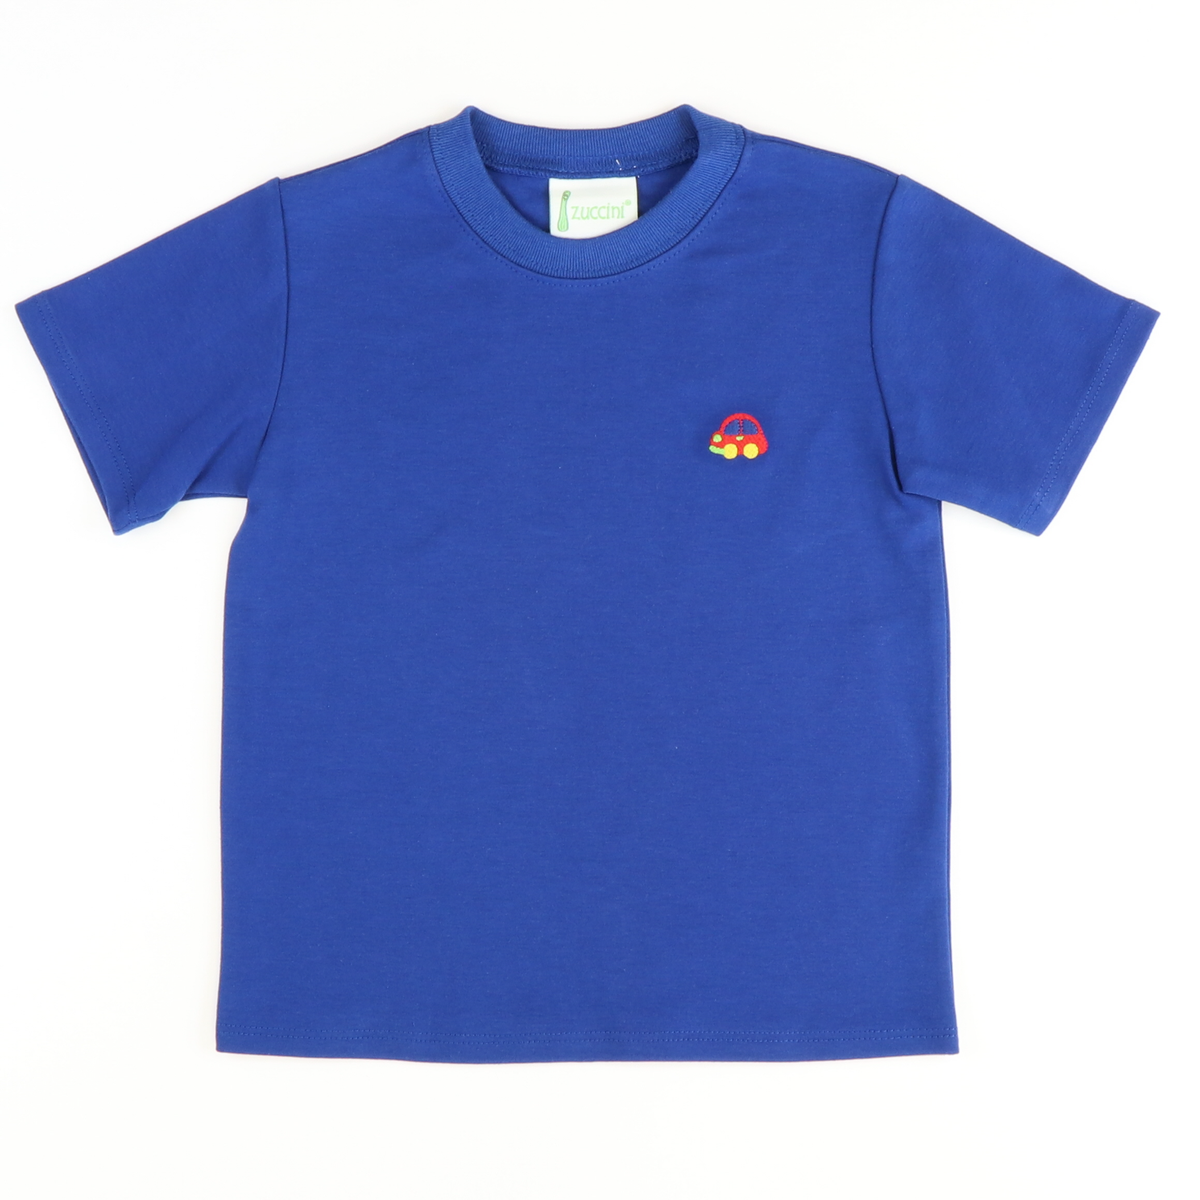 Embroidered Car T-Shirt - Royal Blue Knit